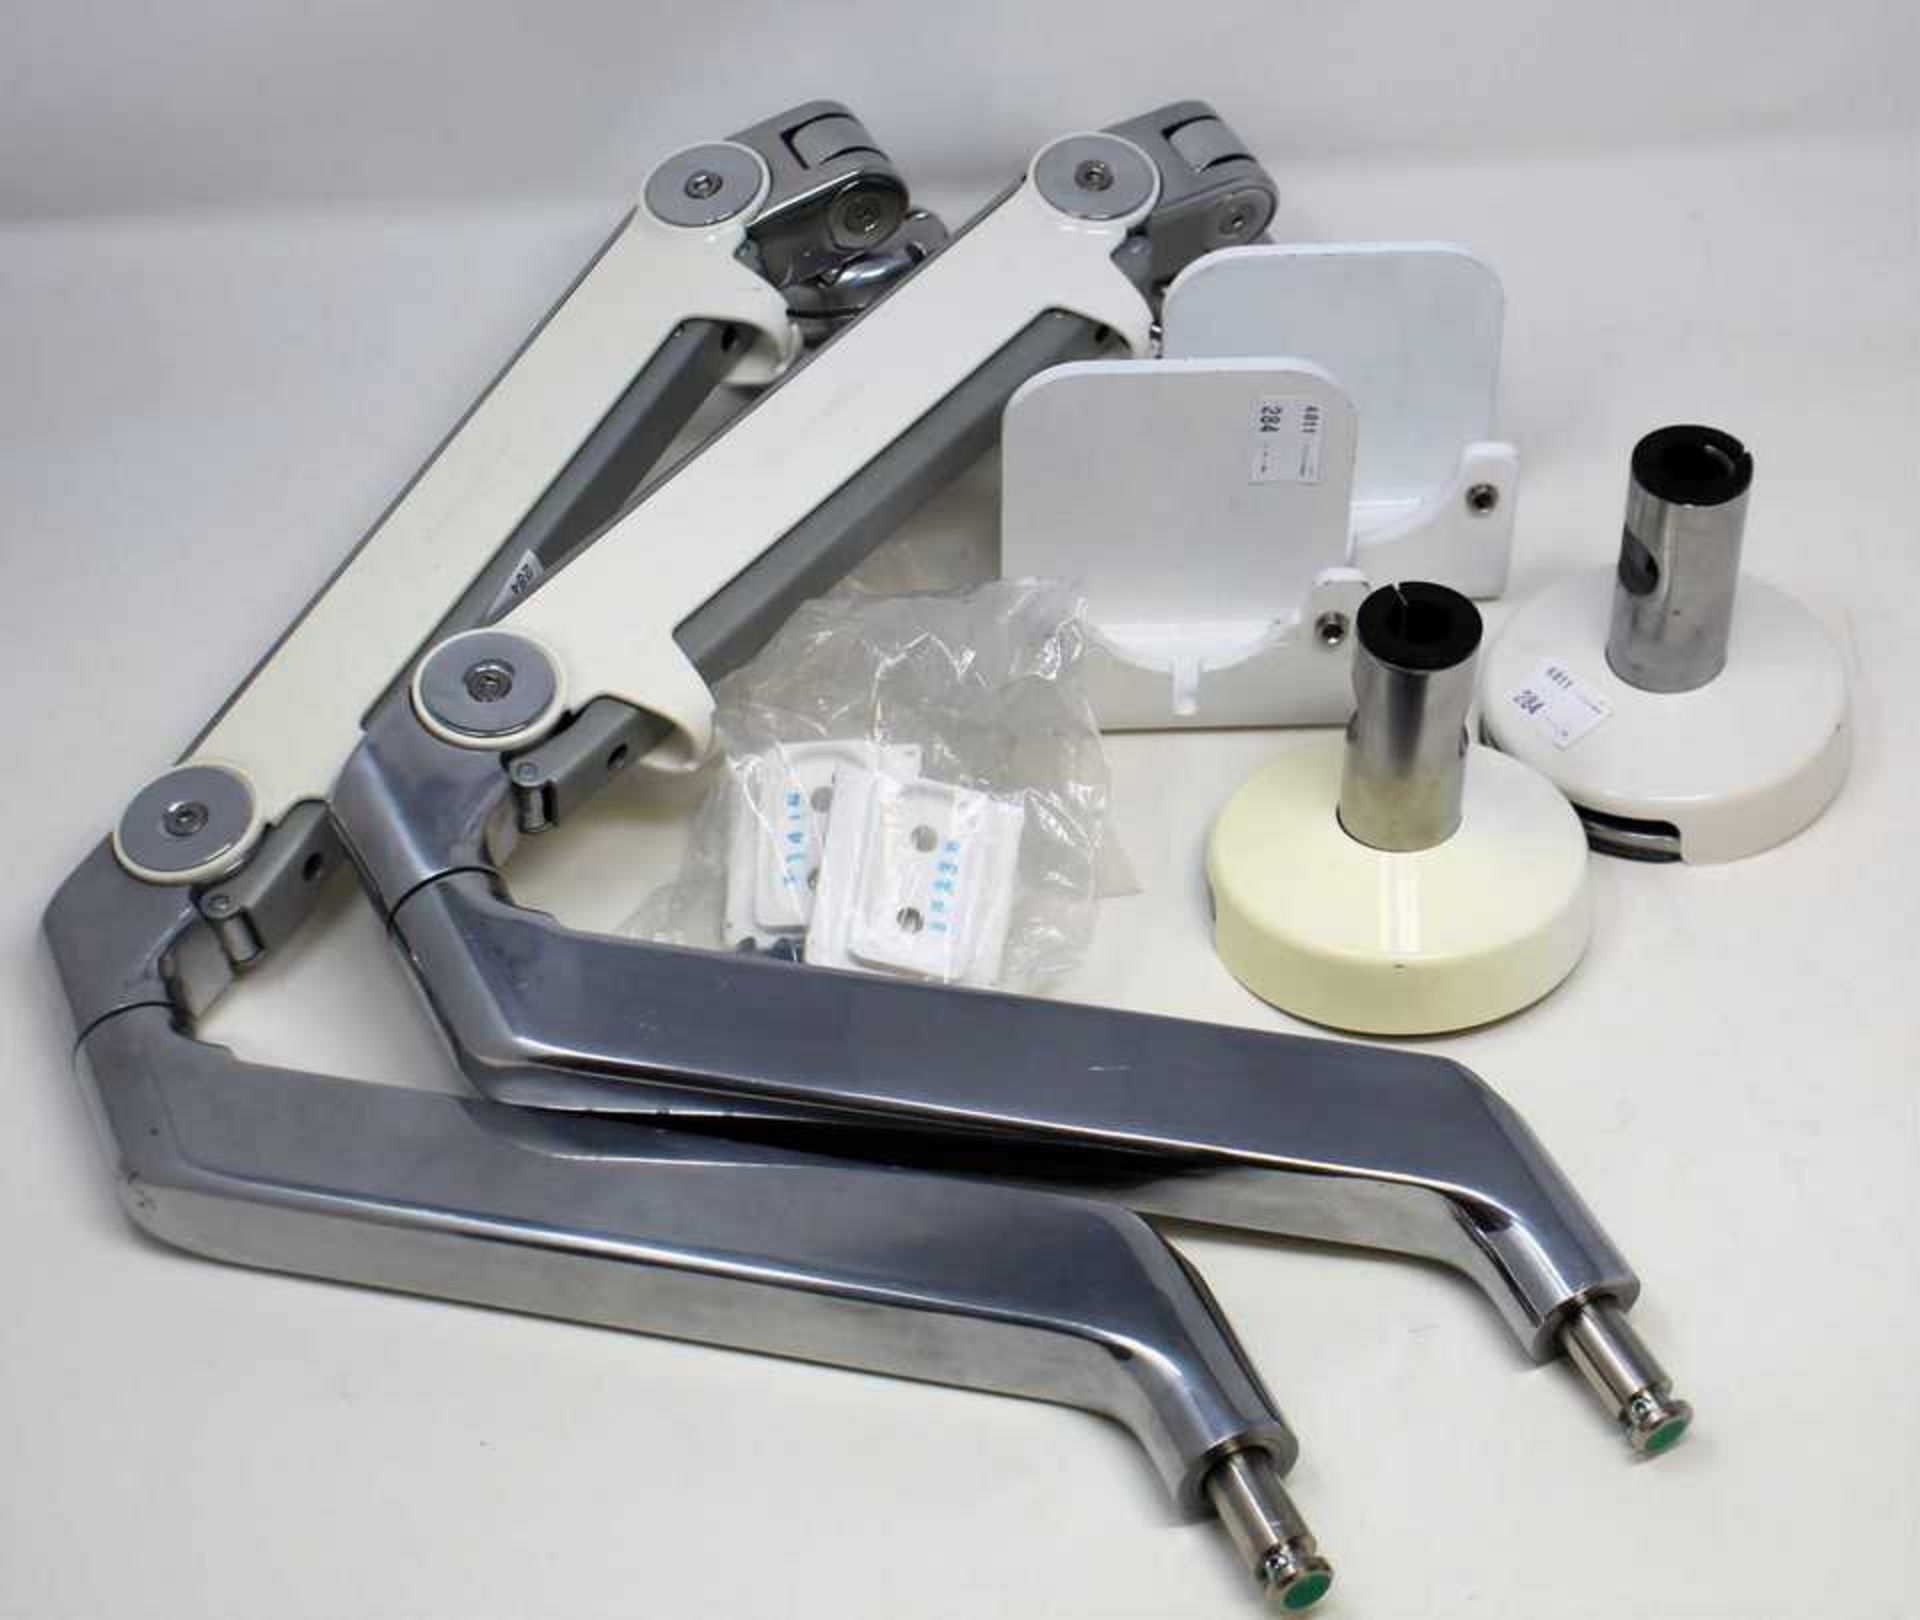 Two pre-owned Humanscale monitor arms (Appear complete, sold as seen).